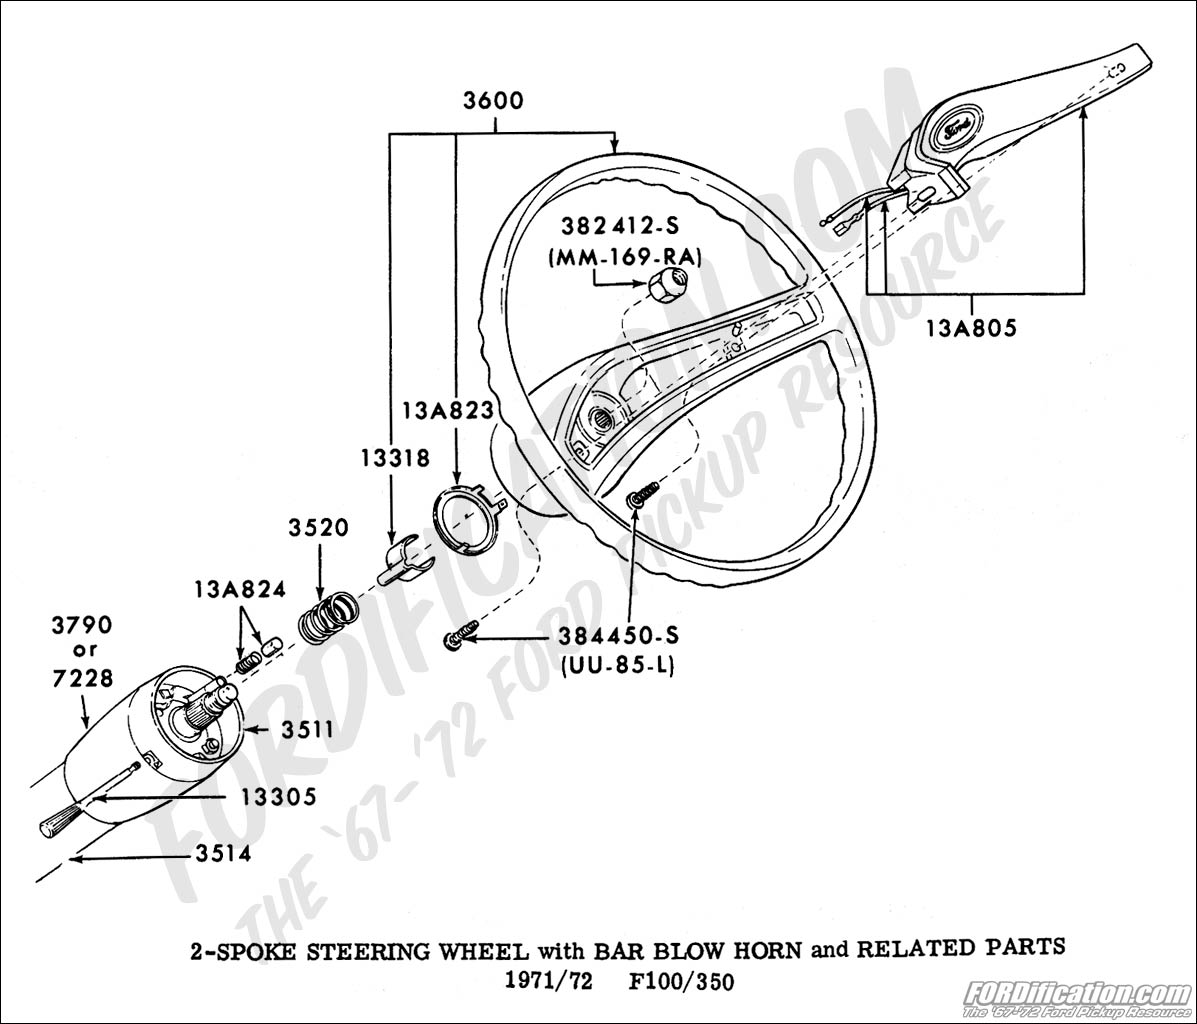 RepairGuideContent additionally Gm Steering Column Wiring Diagram furthermore Schematics i likewise 49 54 Chevy Passenger Car Chassis Diagram furthermore 7 5 Hp Mercury Outboard Parts Schematic. on 66 nova wiring diagram